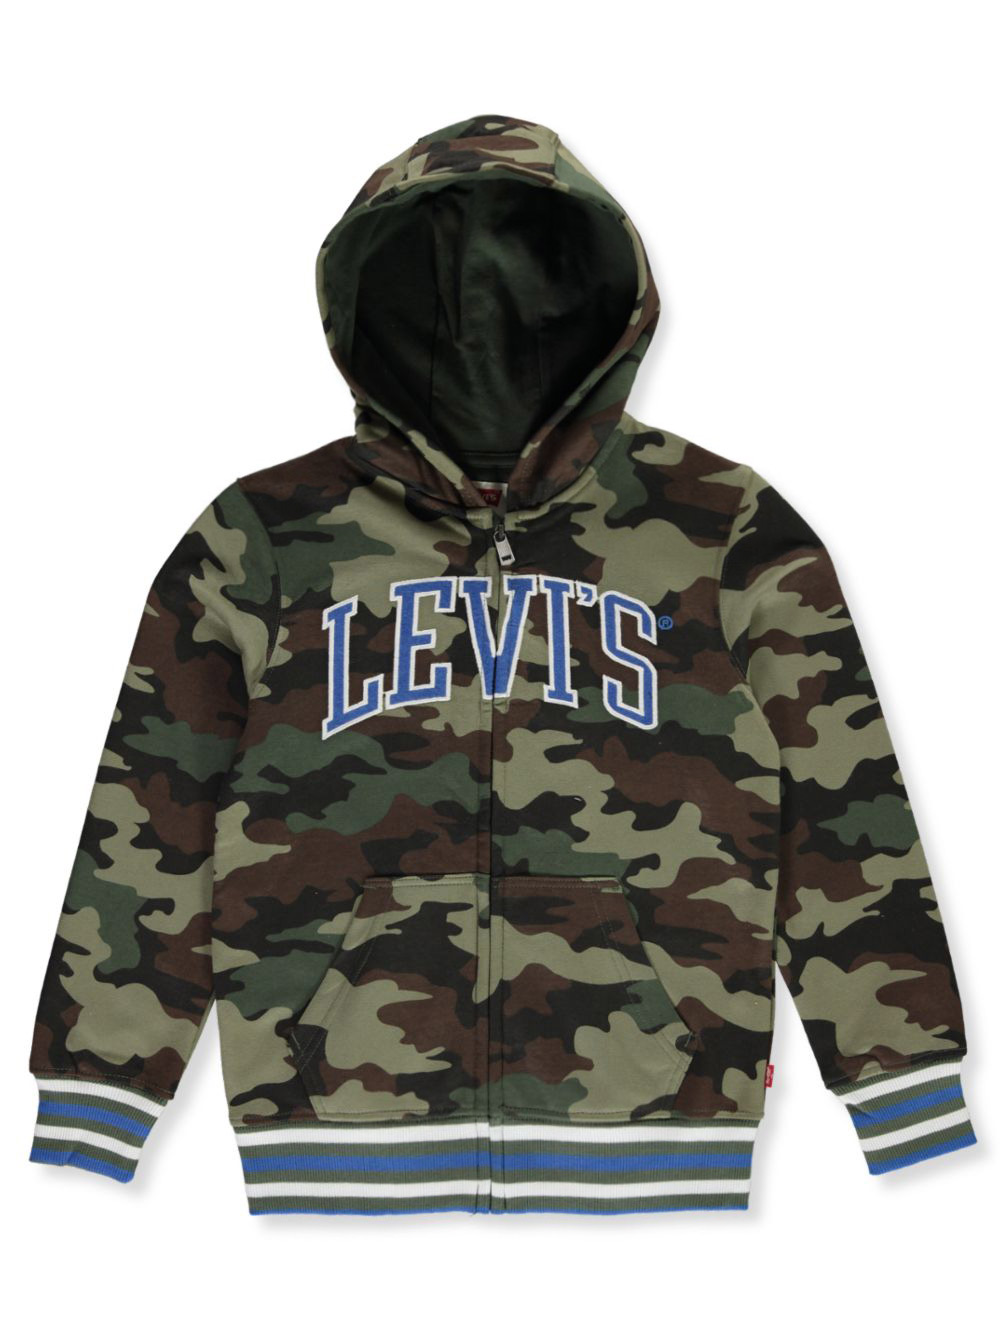 Size 12-14 Hoodies for Boys